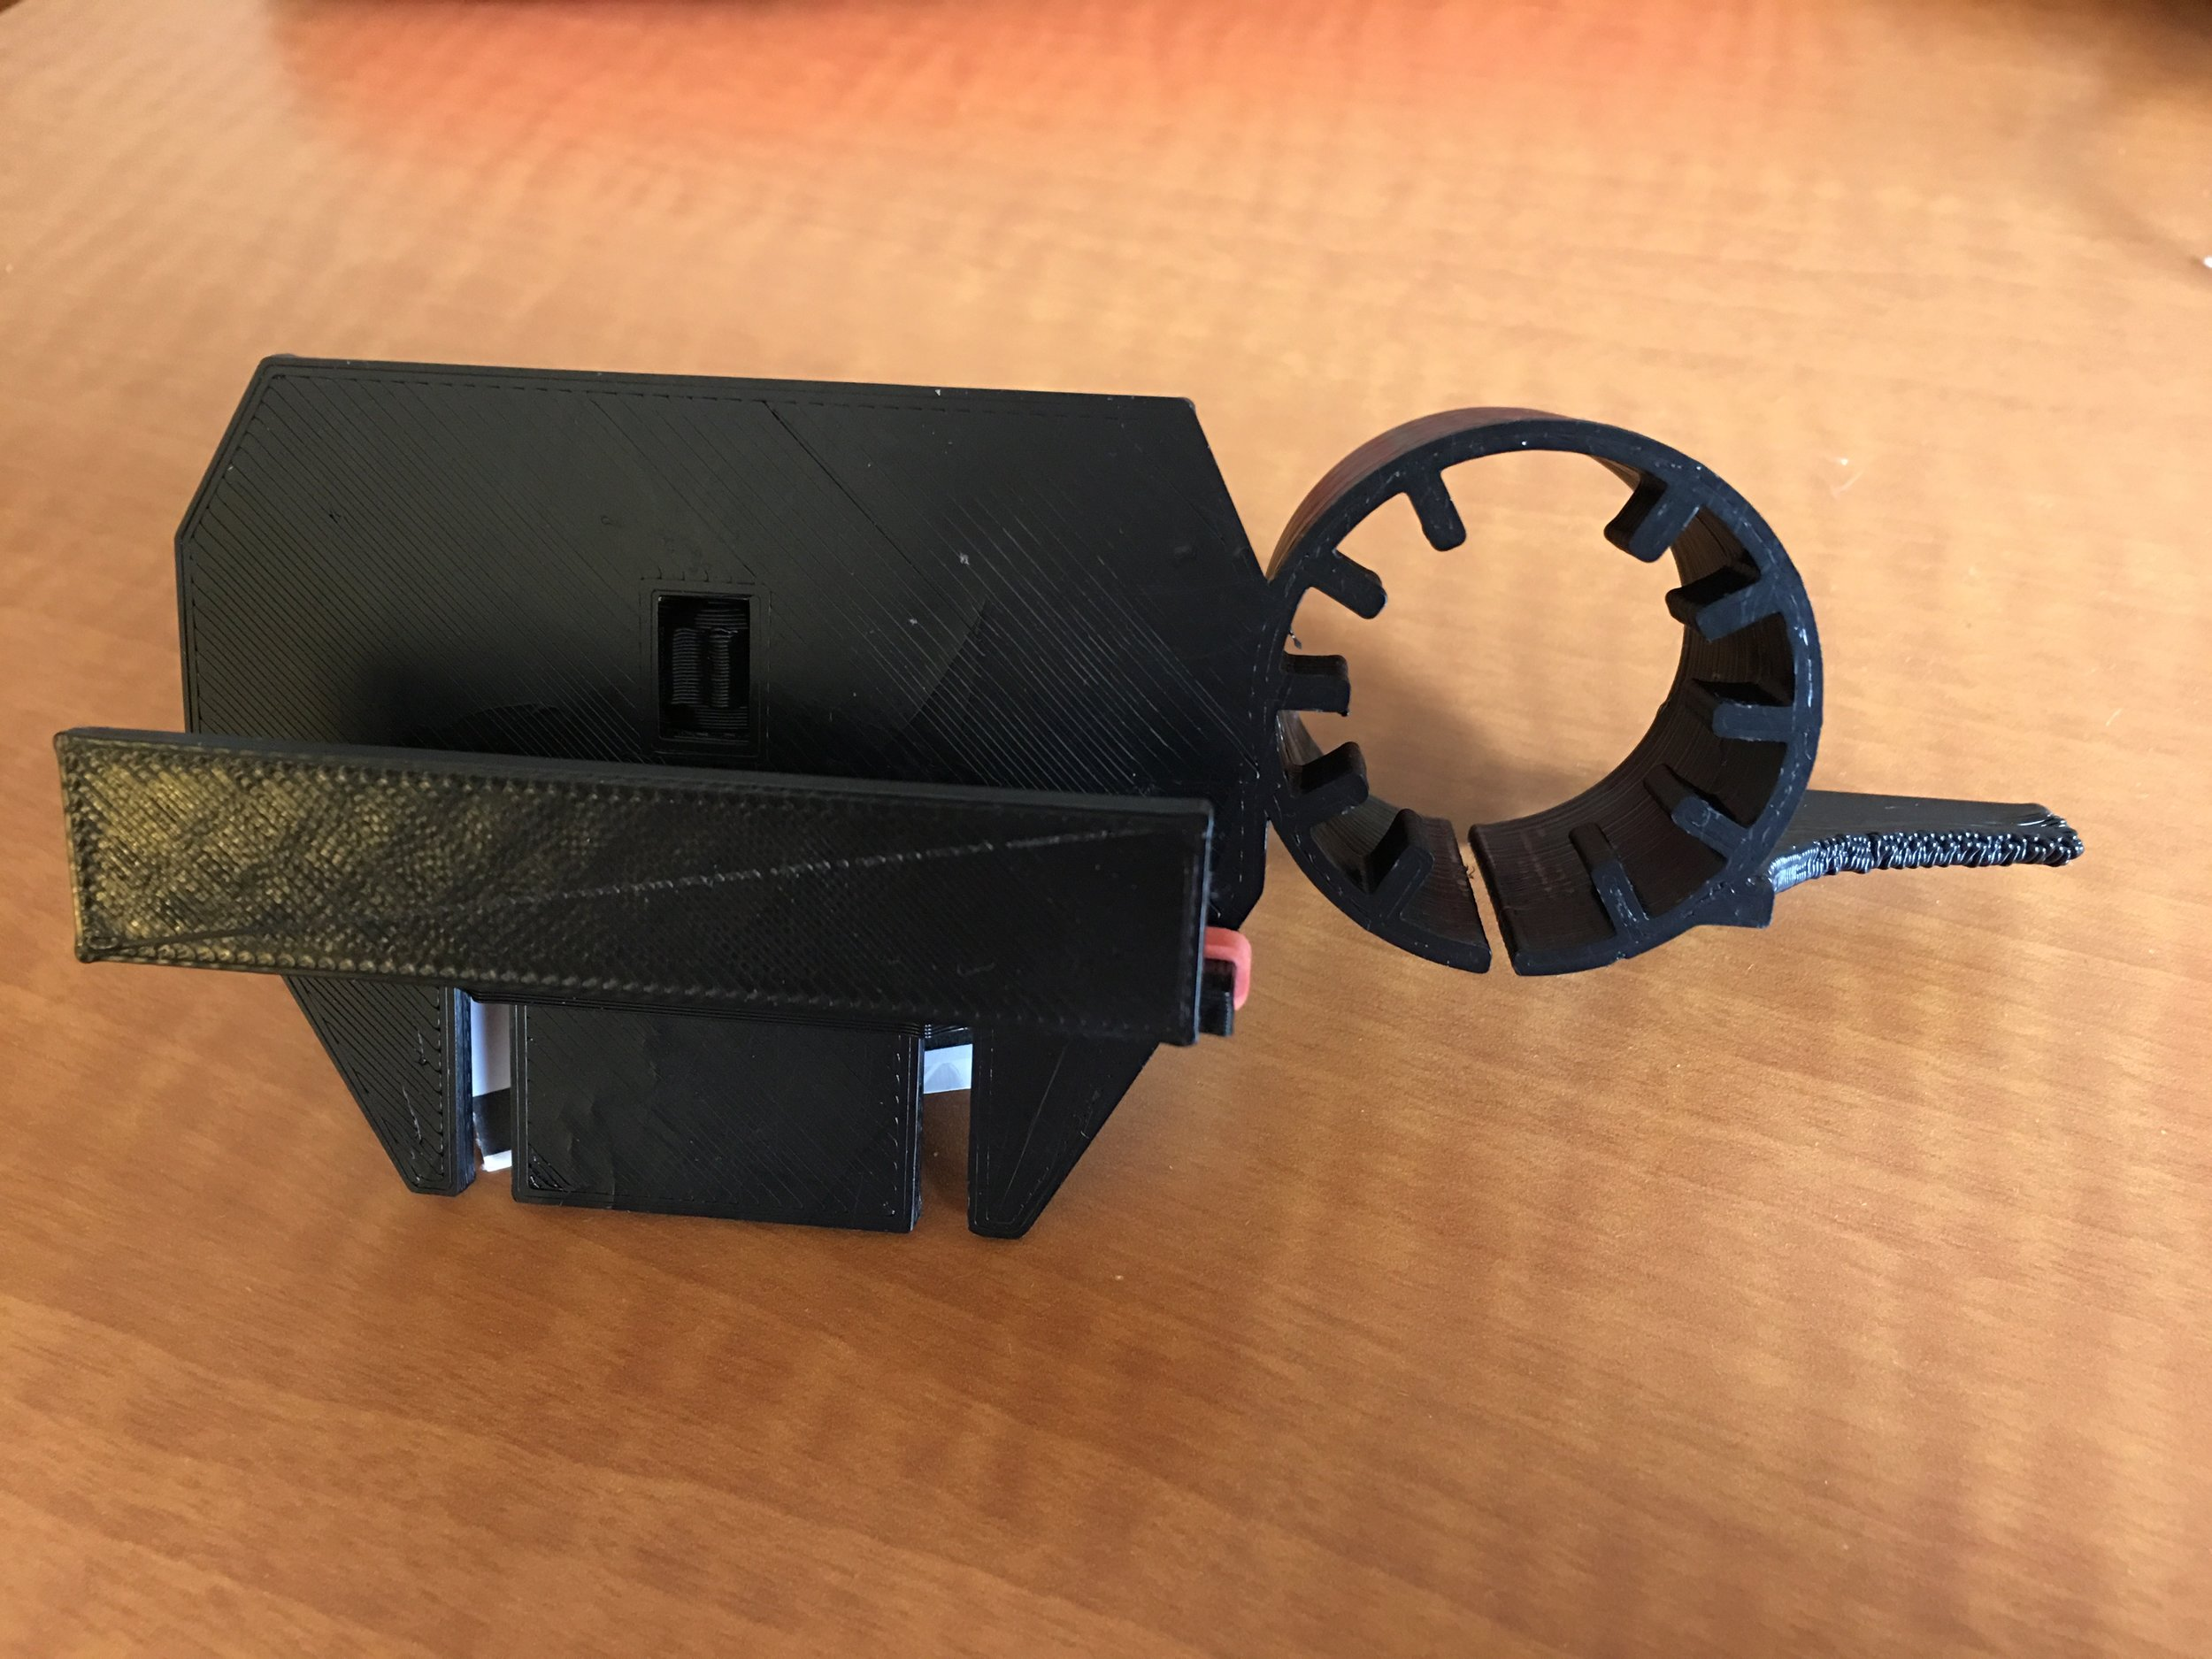 The J-Mount from the front. The barrel section can accommodate larger eyepieces to allow for a secure fit, while the ribs on the inside of the barrel maintain proper Z-distance. Shims (not pictured) can adjust the Z-distance for those with thin or no case on their smartphone. Additionally, the J-Mount can be customized with a logo on the movable Y-adjustable platform. Please contact us if interested in device customization.